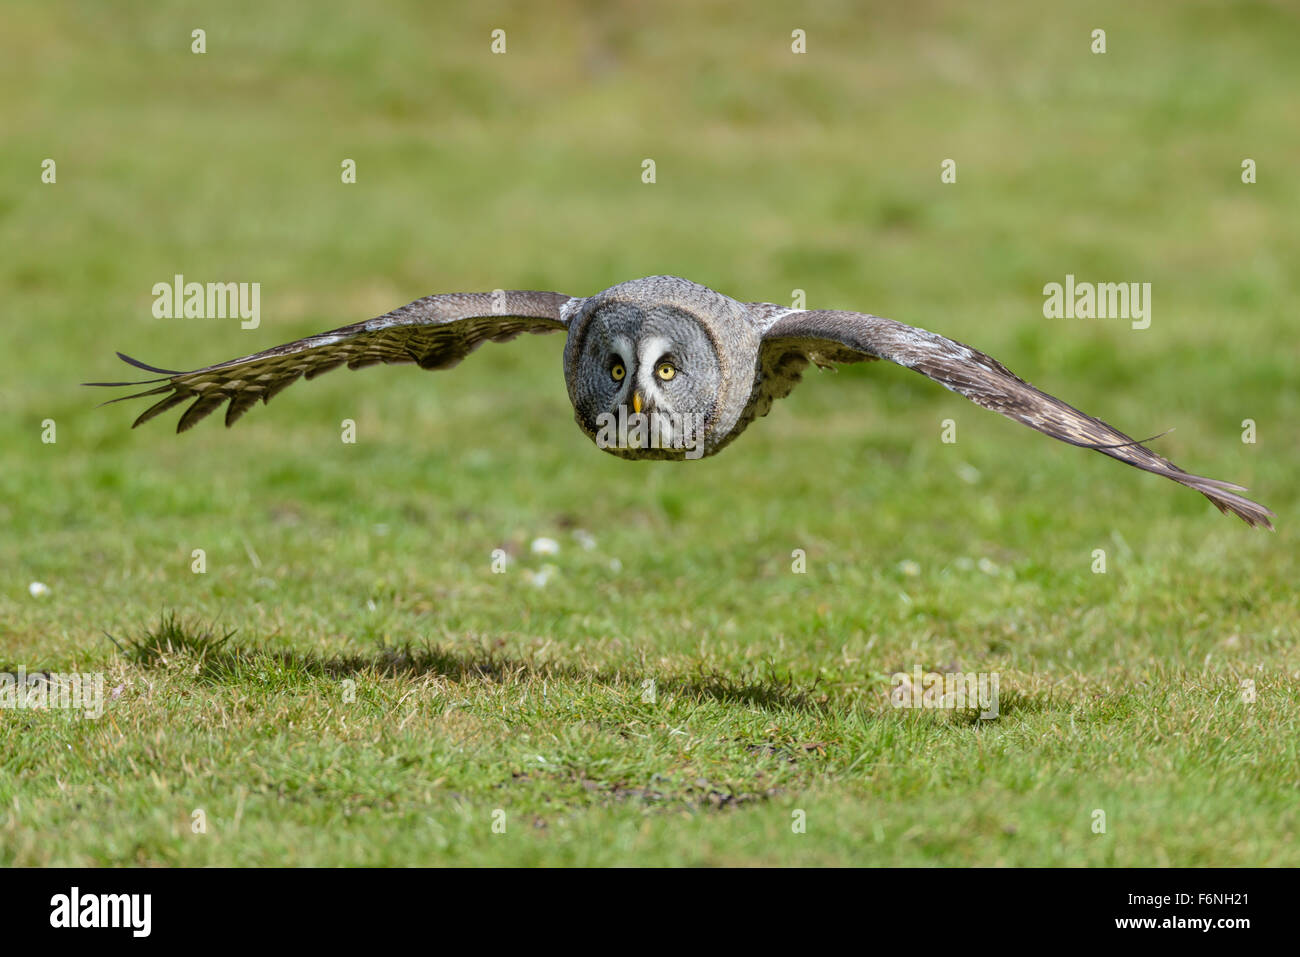 Bartkauz, Strix nebulosa, Great gray owl Stock Photo